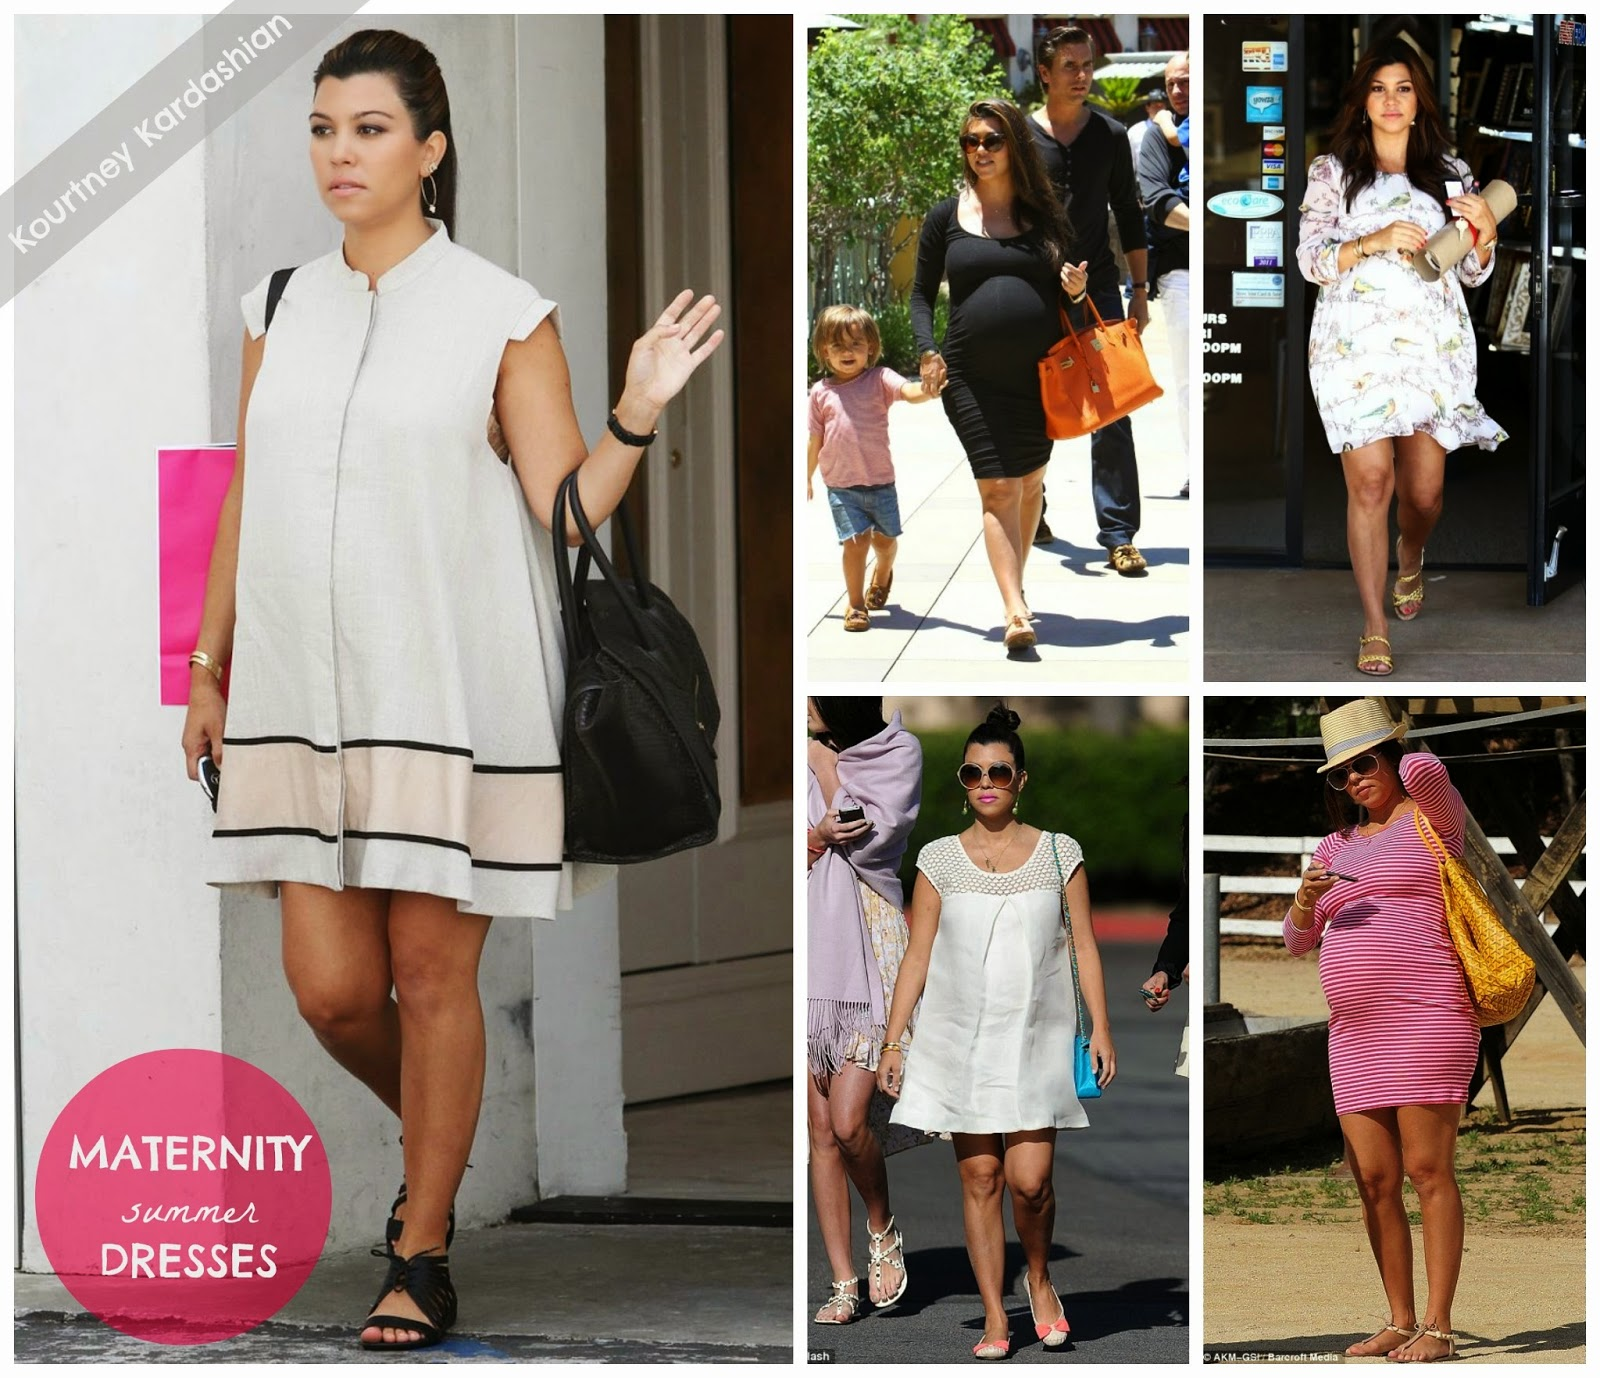 Steal Her Style: Kourtney Kardashian Maternity // The Twisted Horn